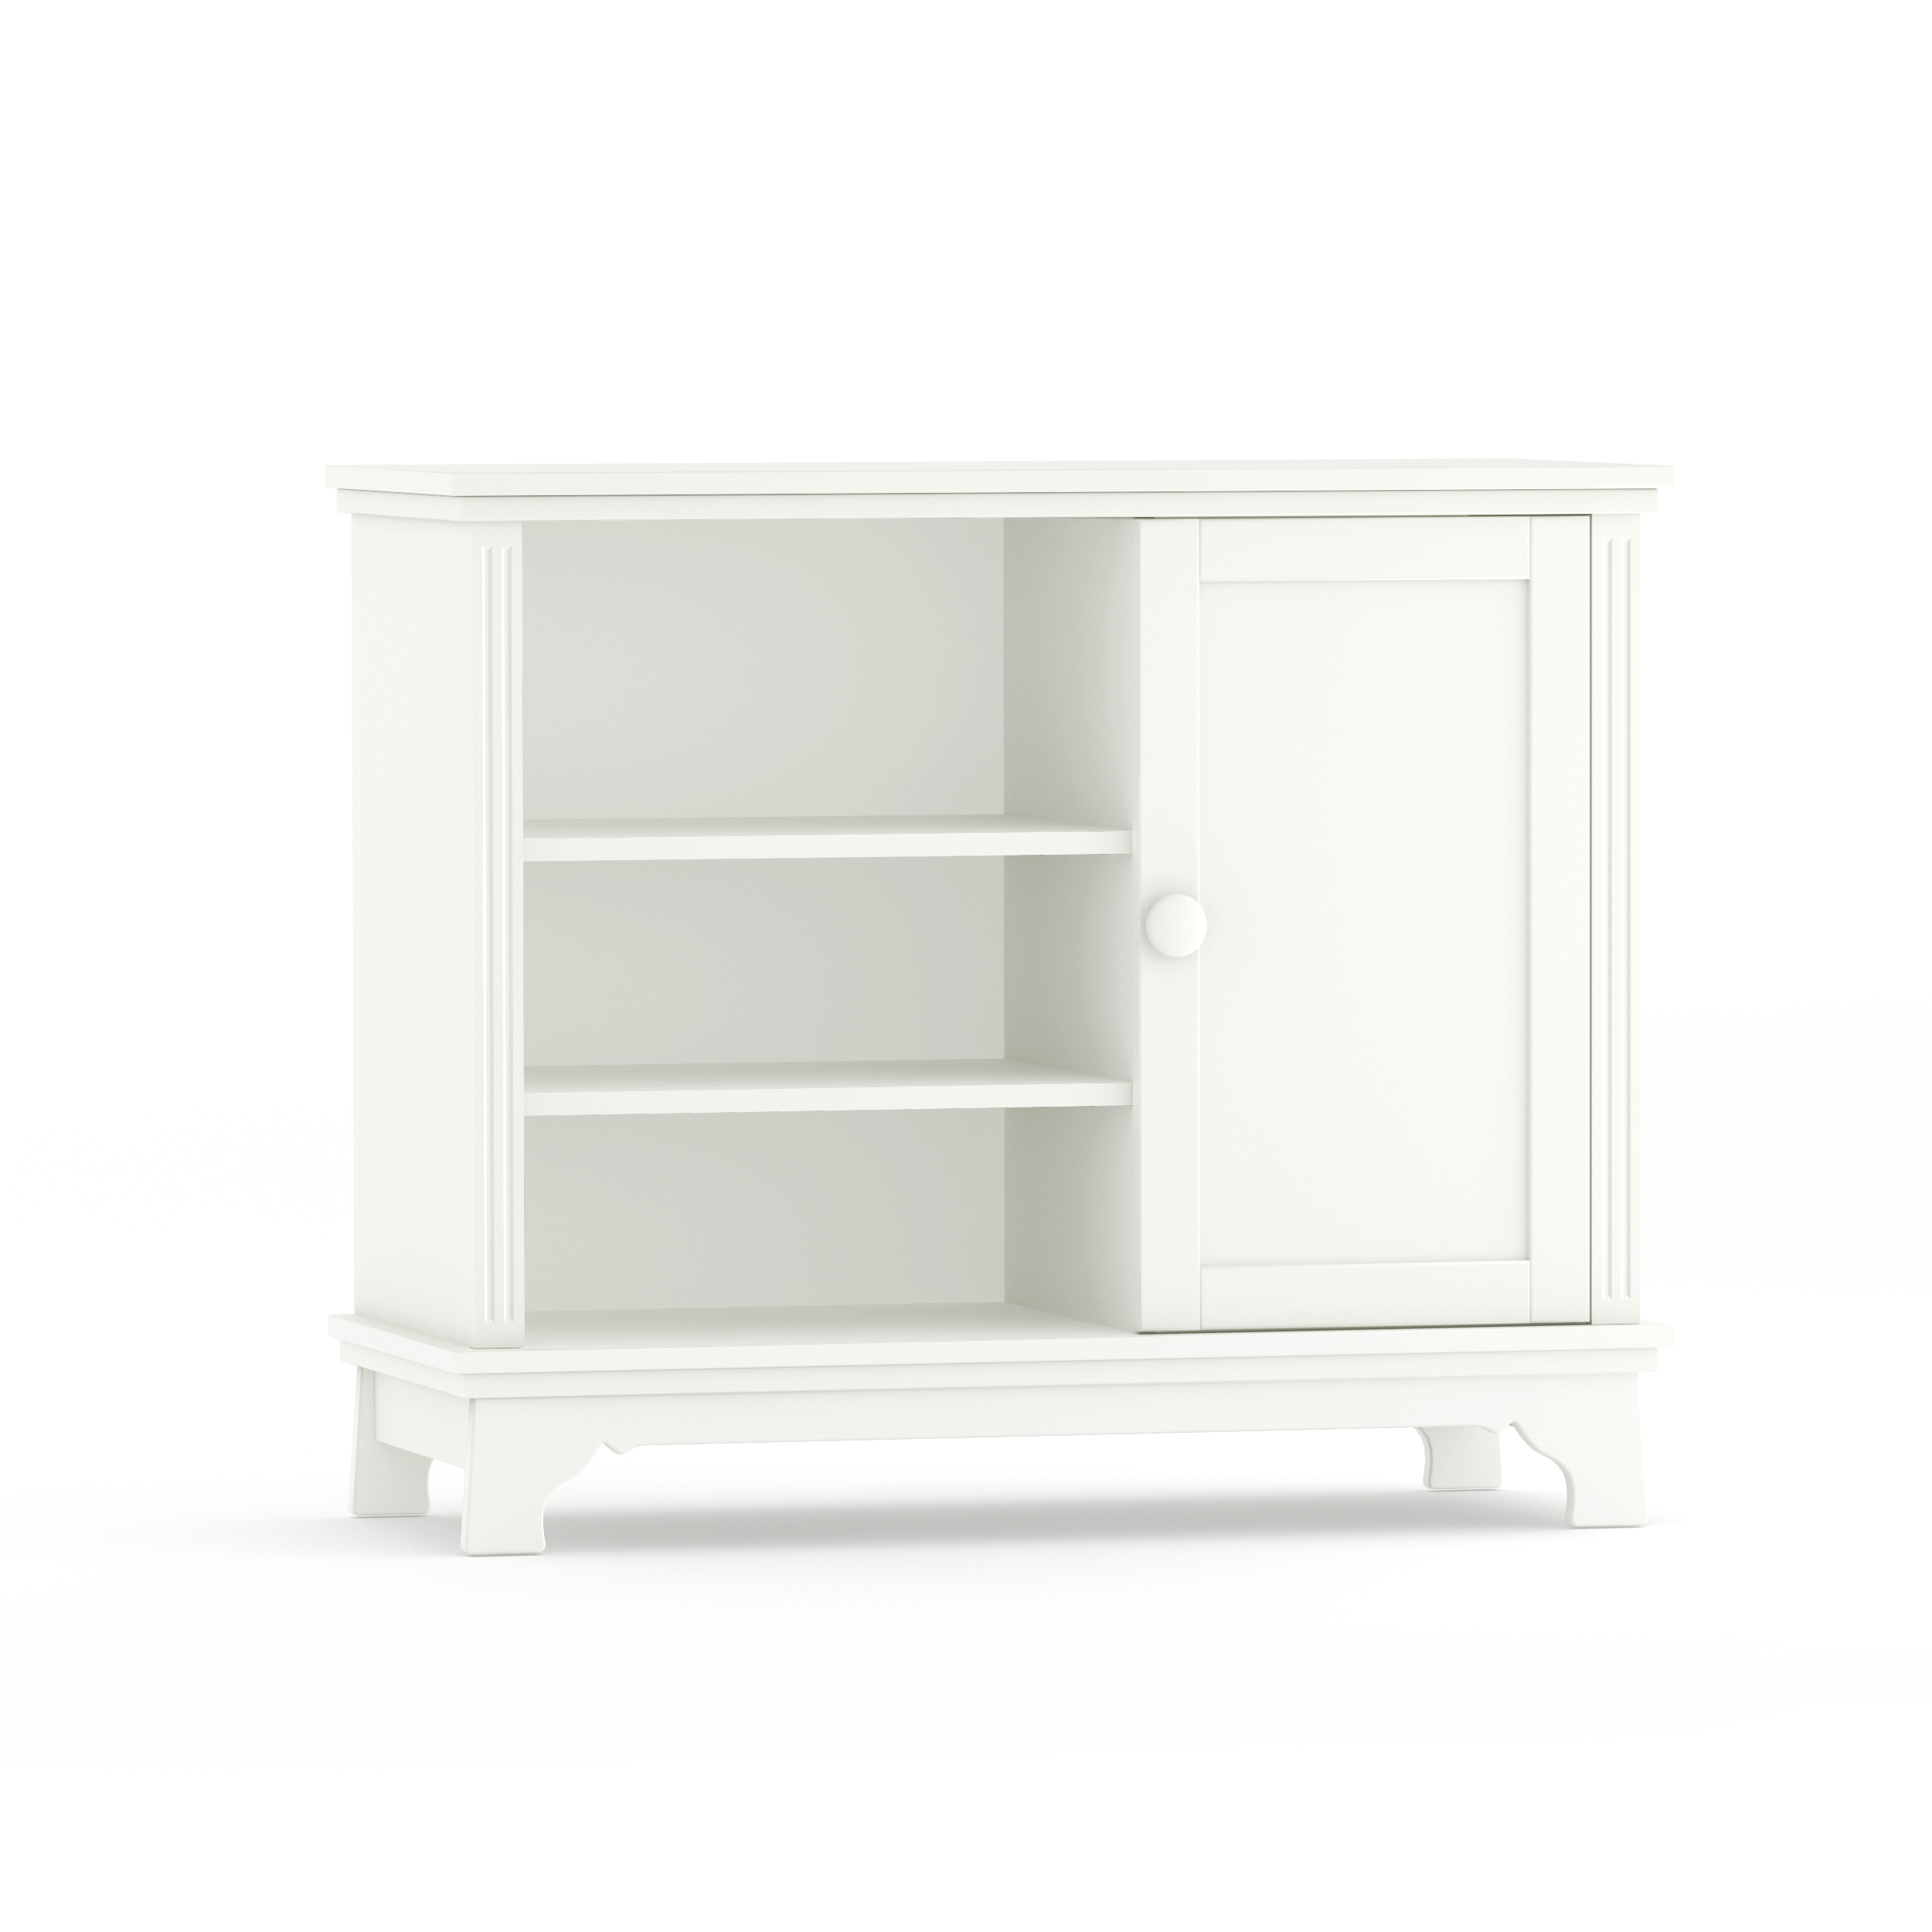 Sideboard Clariss White, Timoore